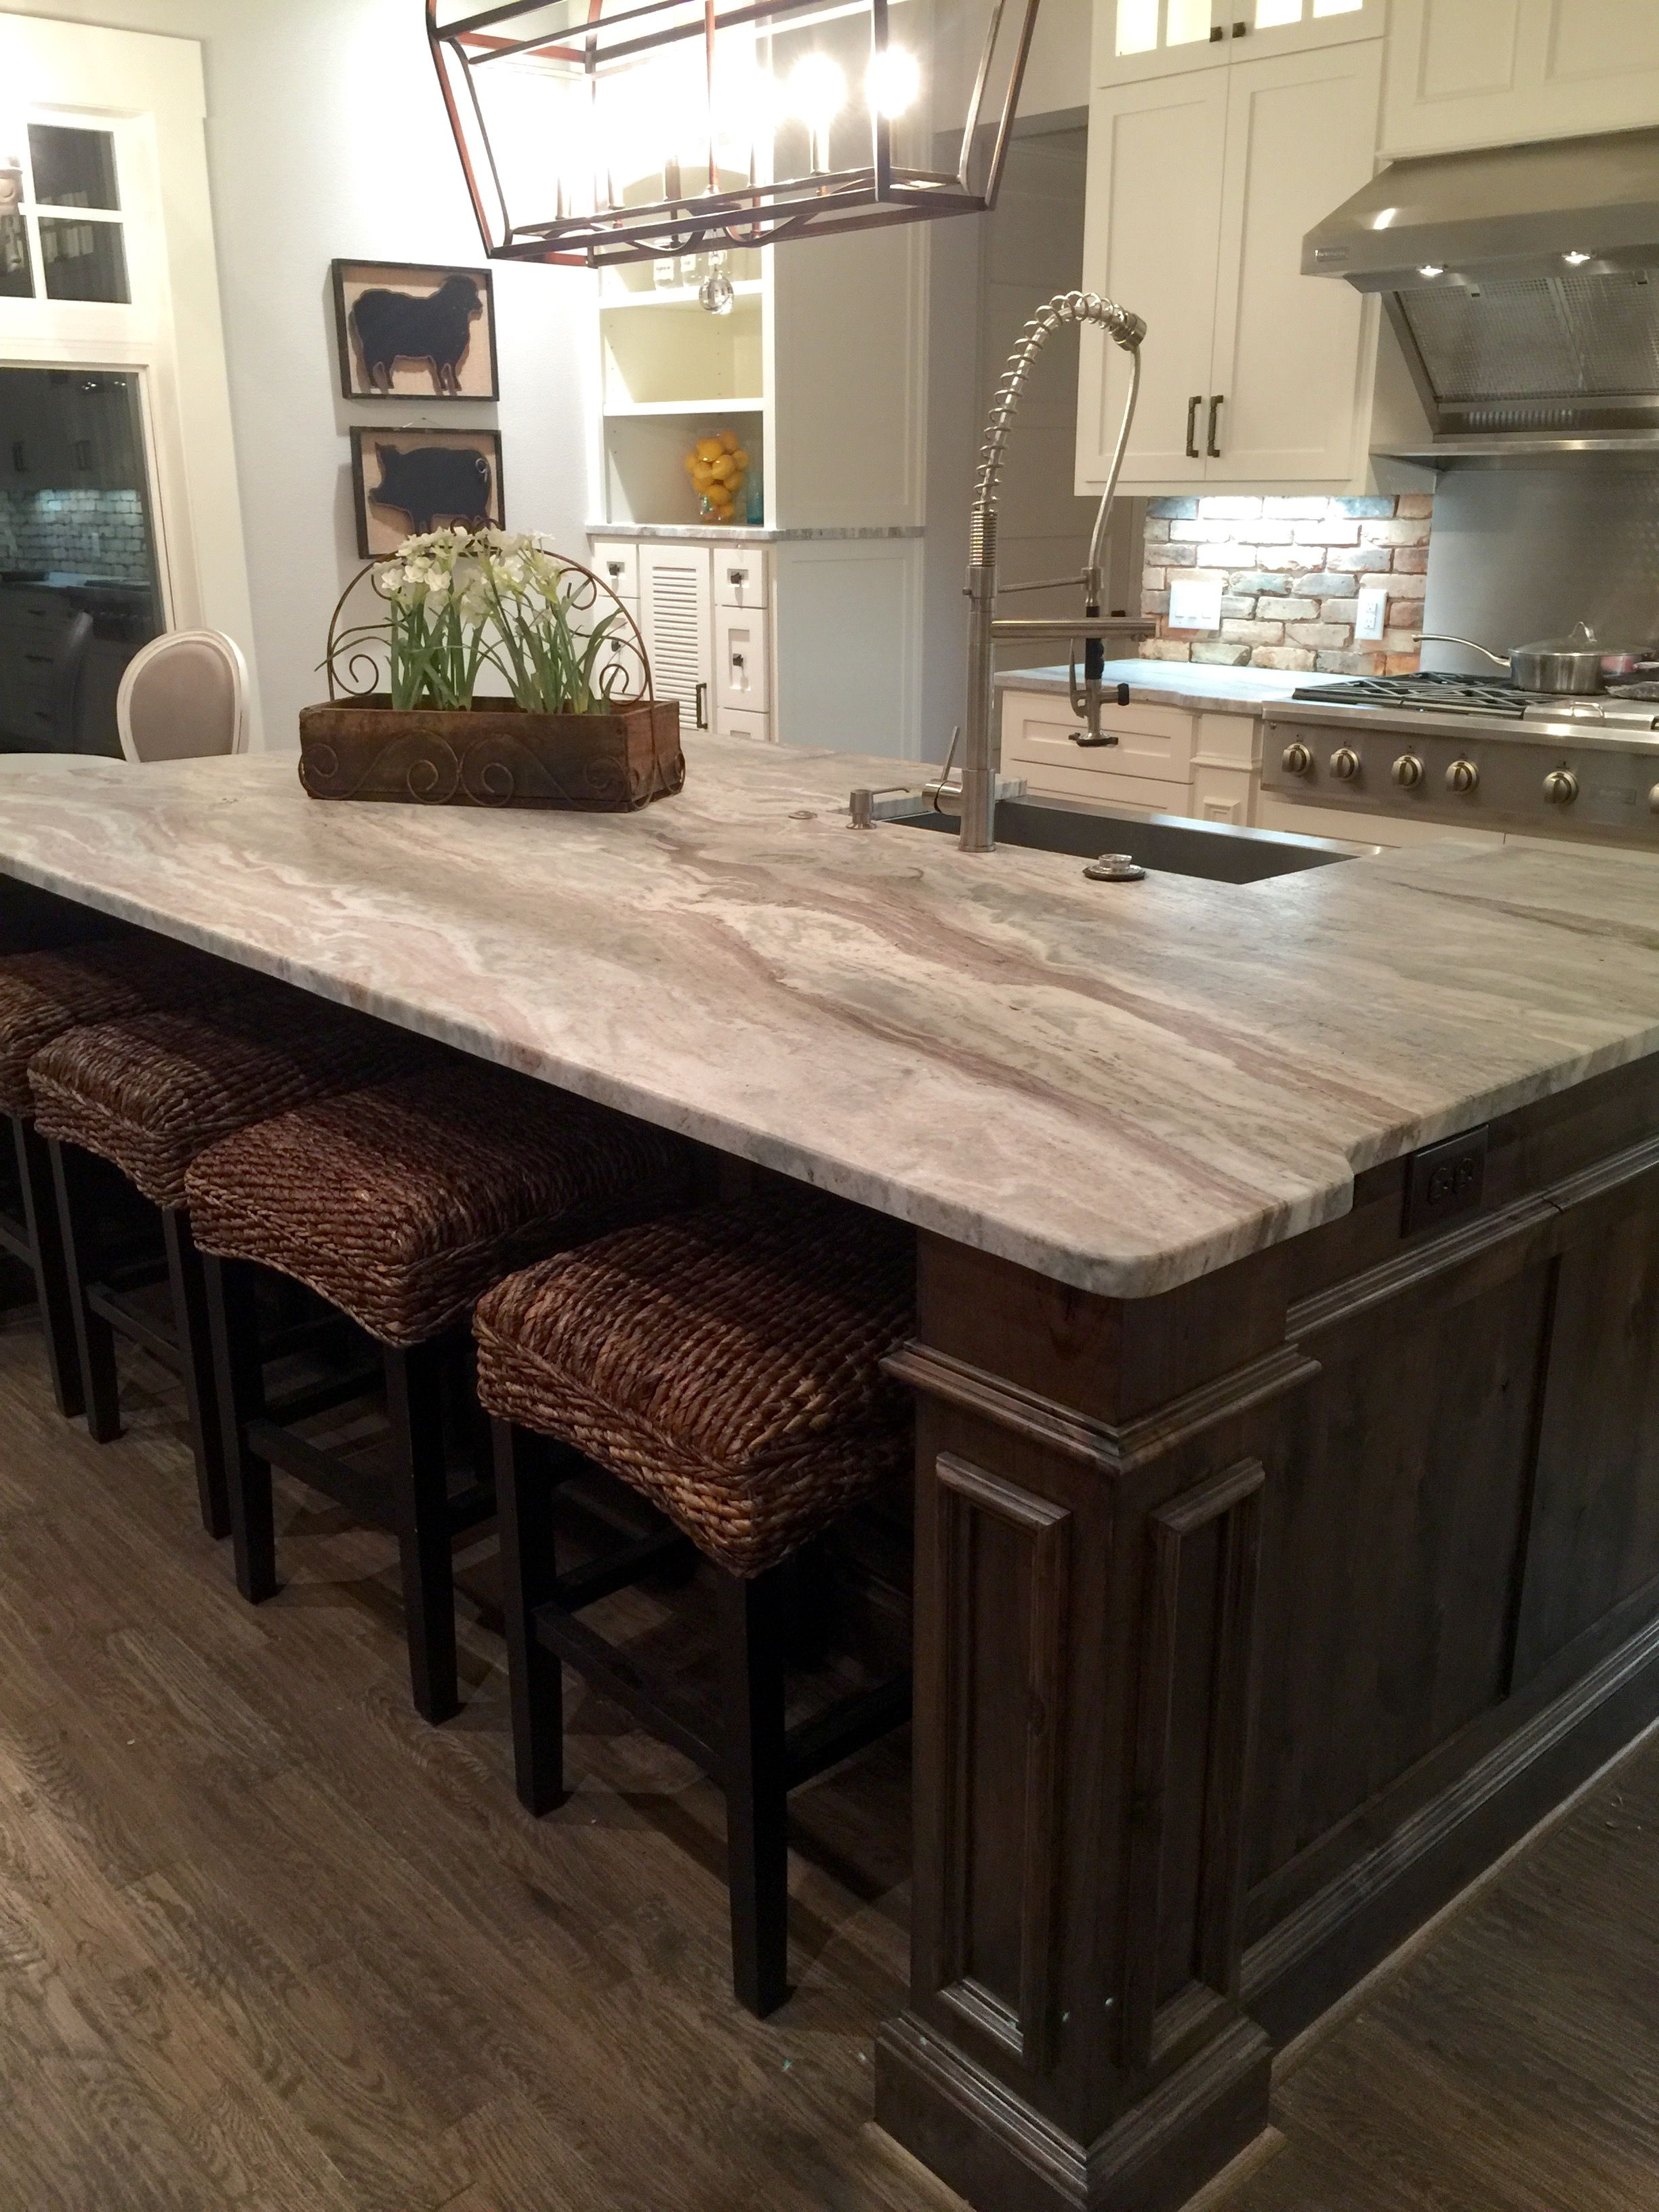 Light Granite River White Granite Kitchen Island Countertop